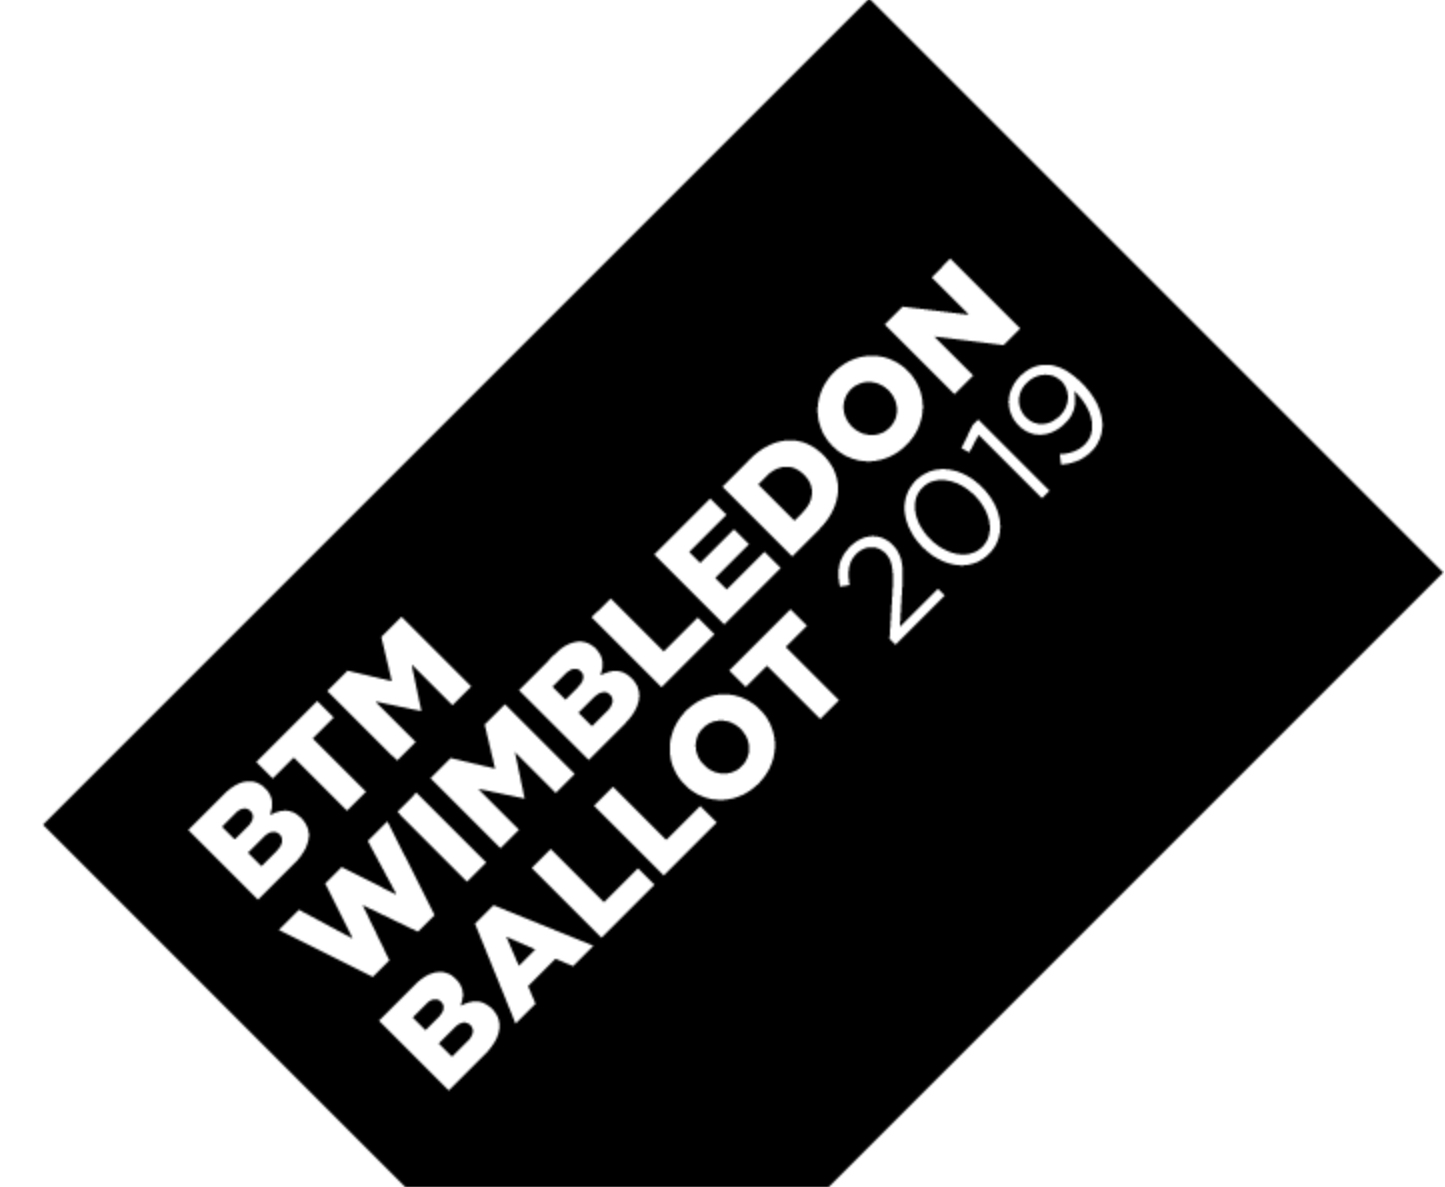 Ticket ballot for Wimbledon is finally moving into the digital age ...